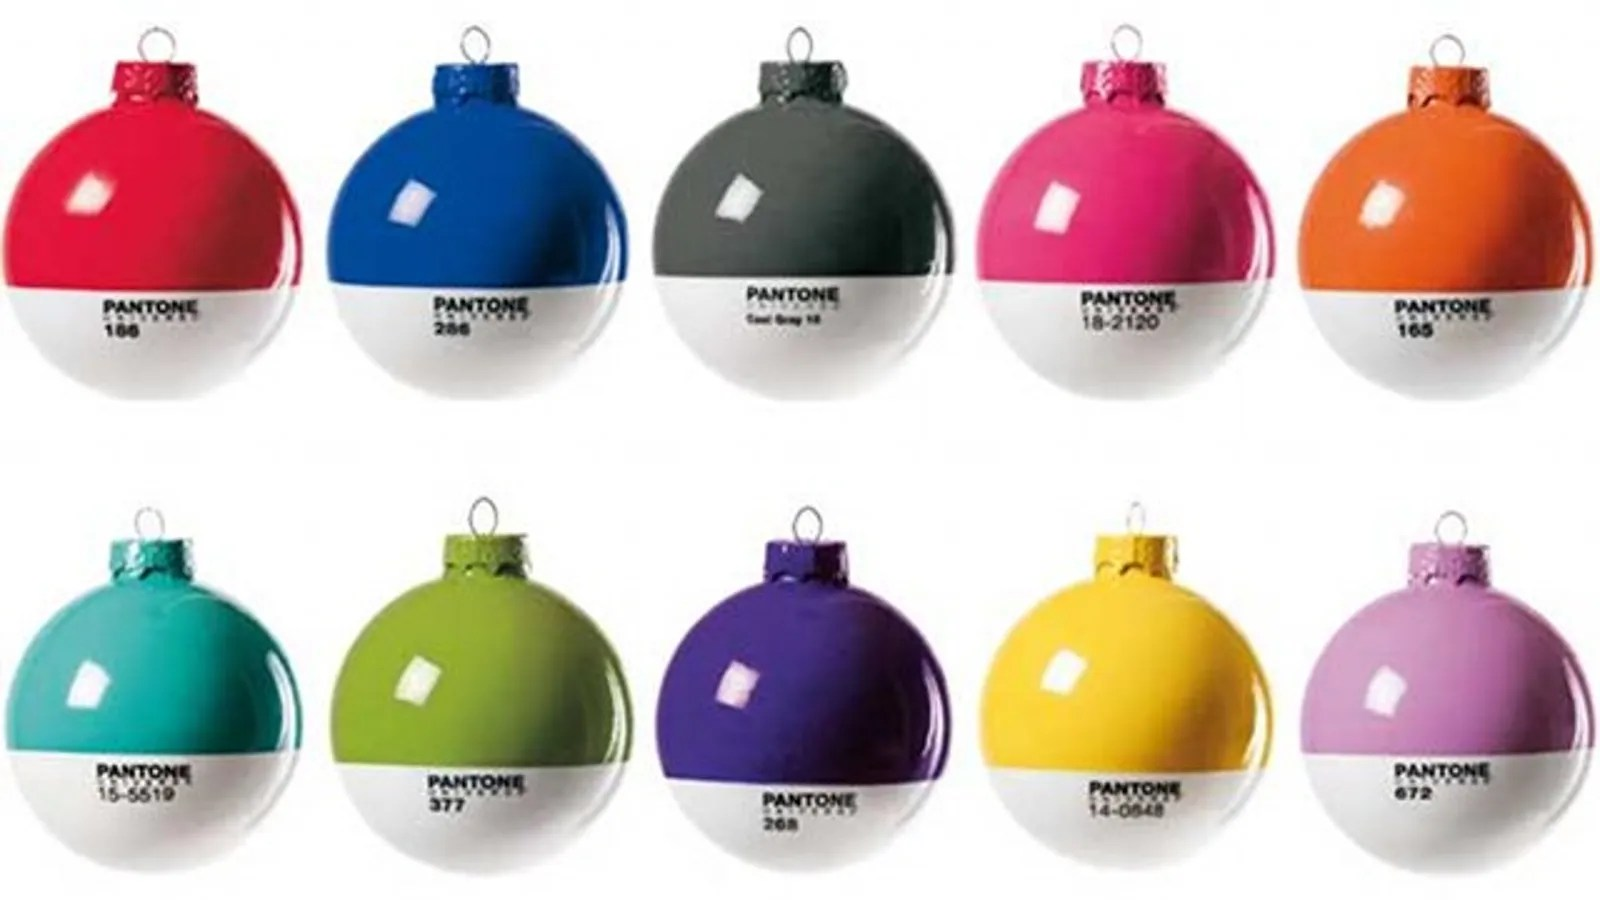 Pantone Christmas Ornaments Daily Desired Pantone Ornaments Will Make You Wish It Was